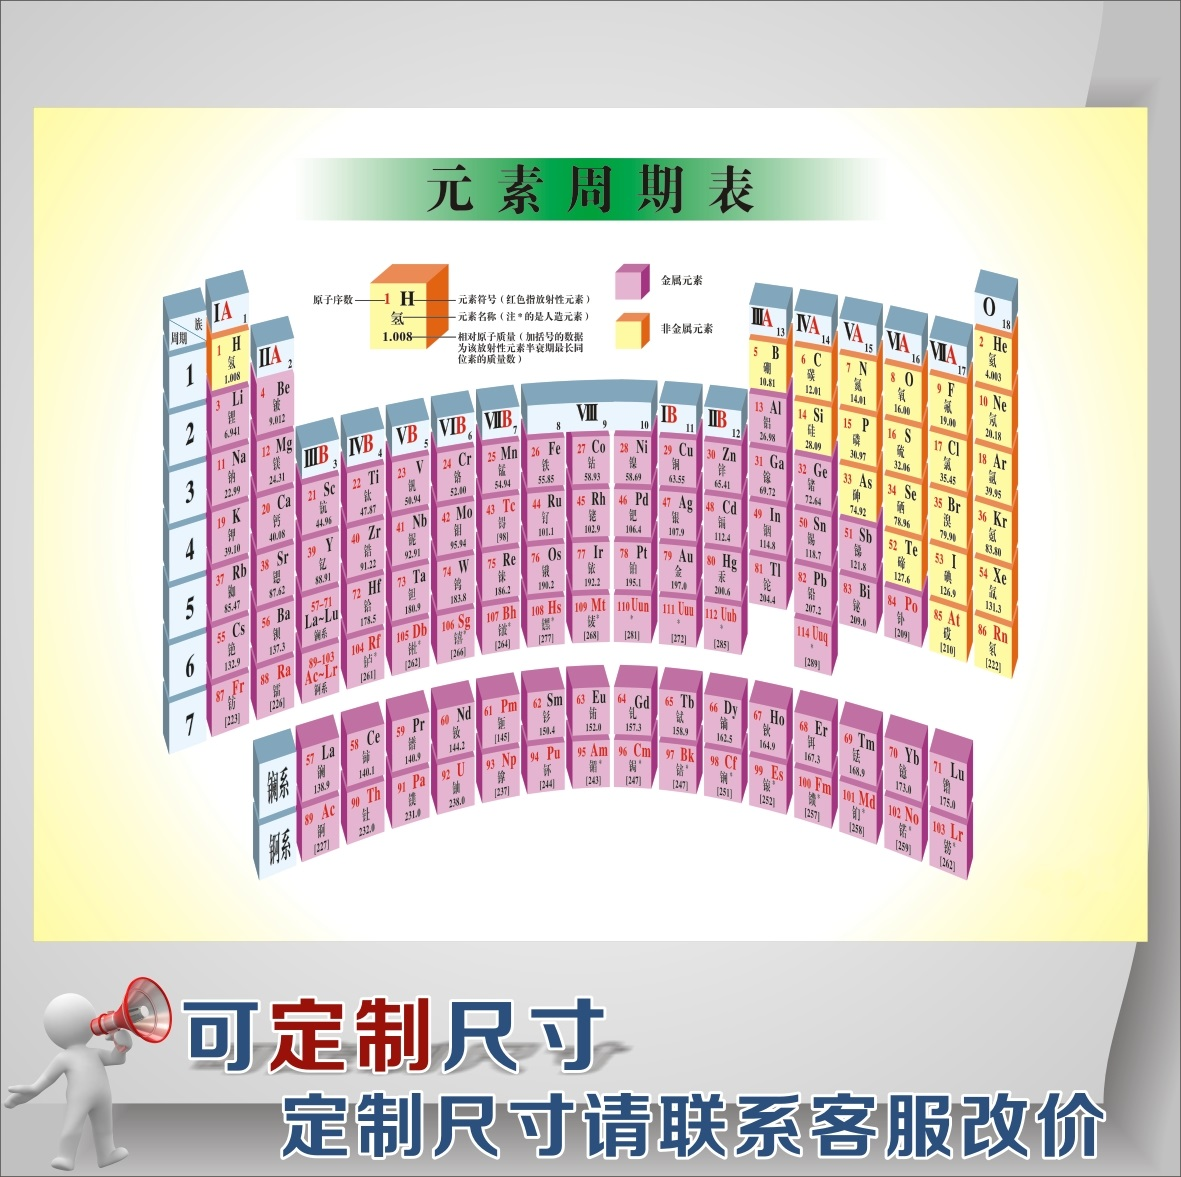 Periodic table slogans gallery periodic table images buy periodic table of the english version of the chemical periodic table wall charts customized chemical gamestrikefo Image collections